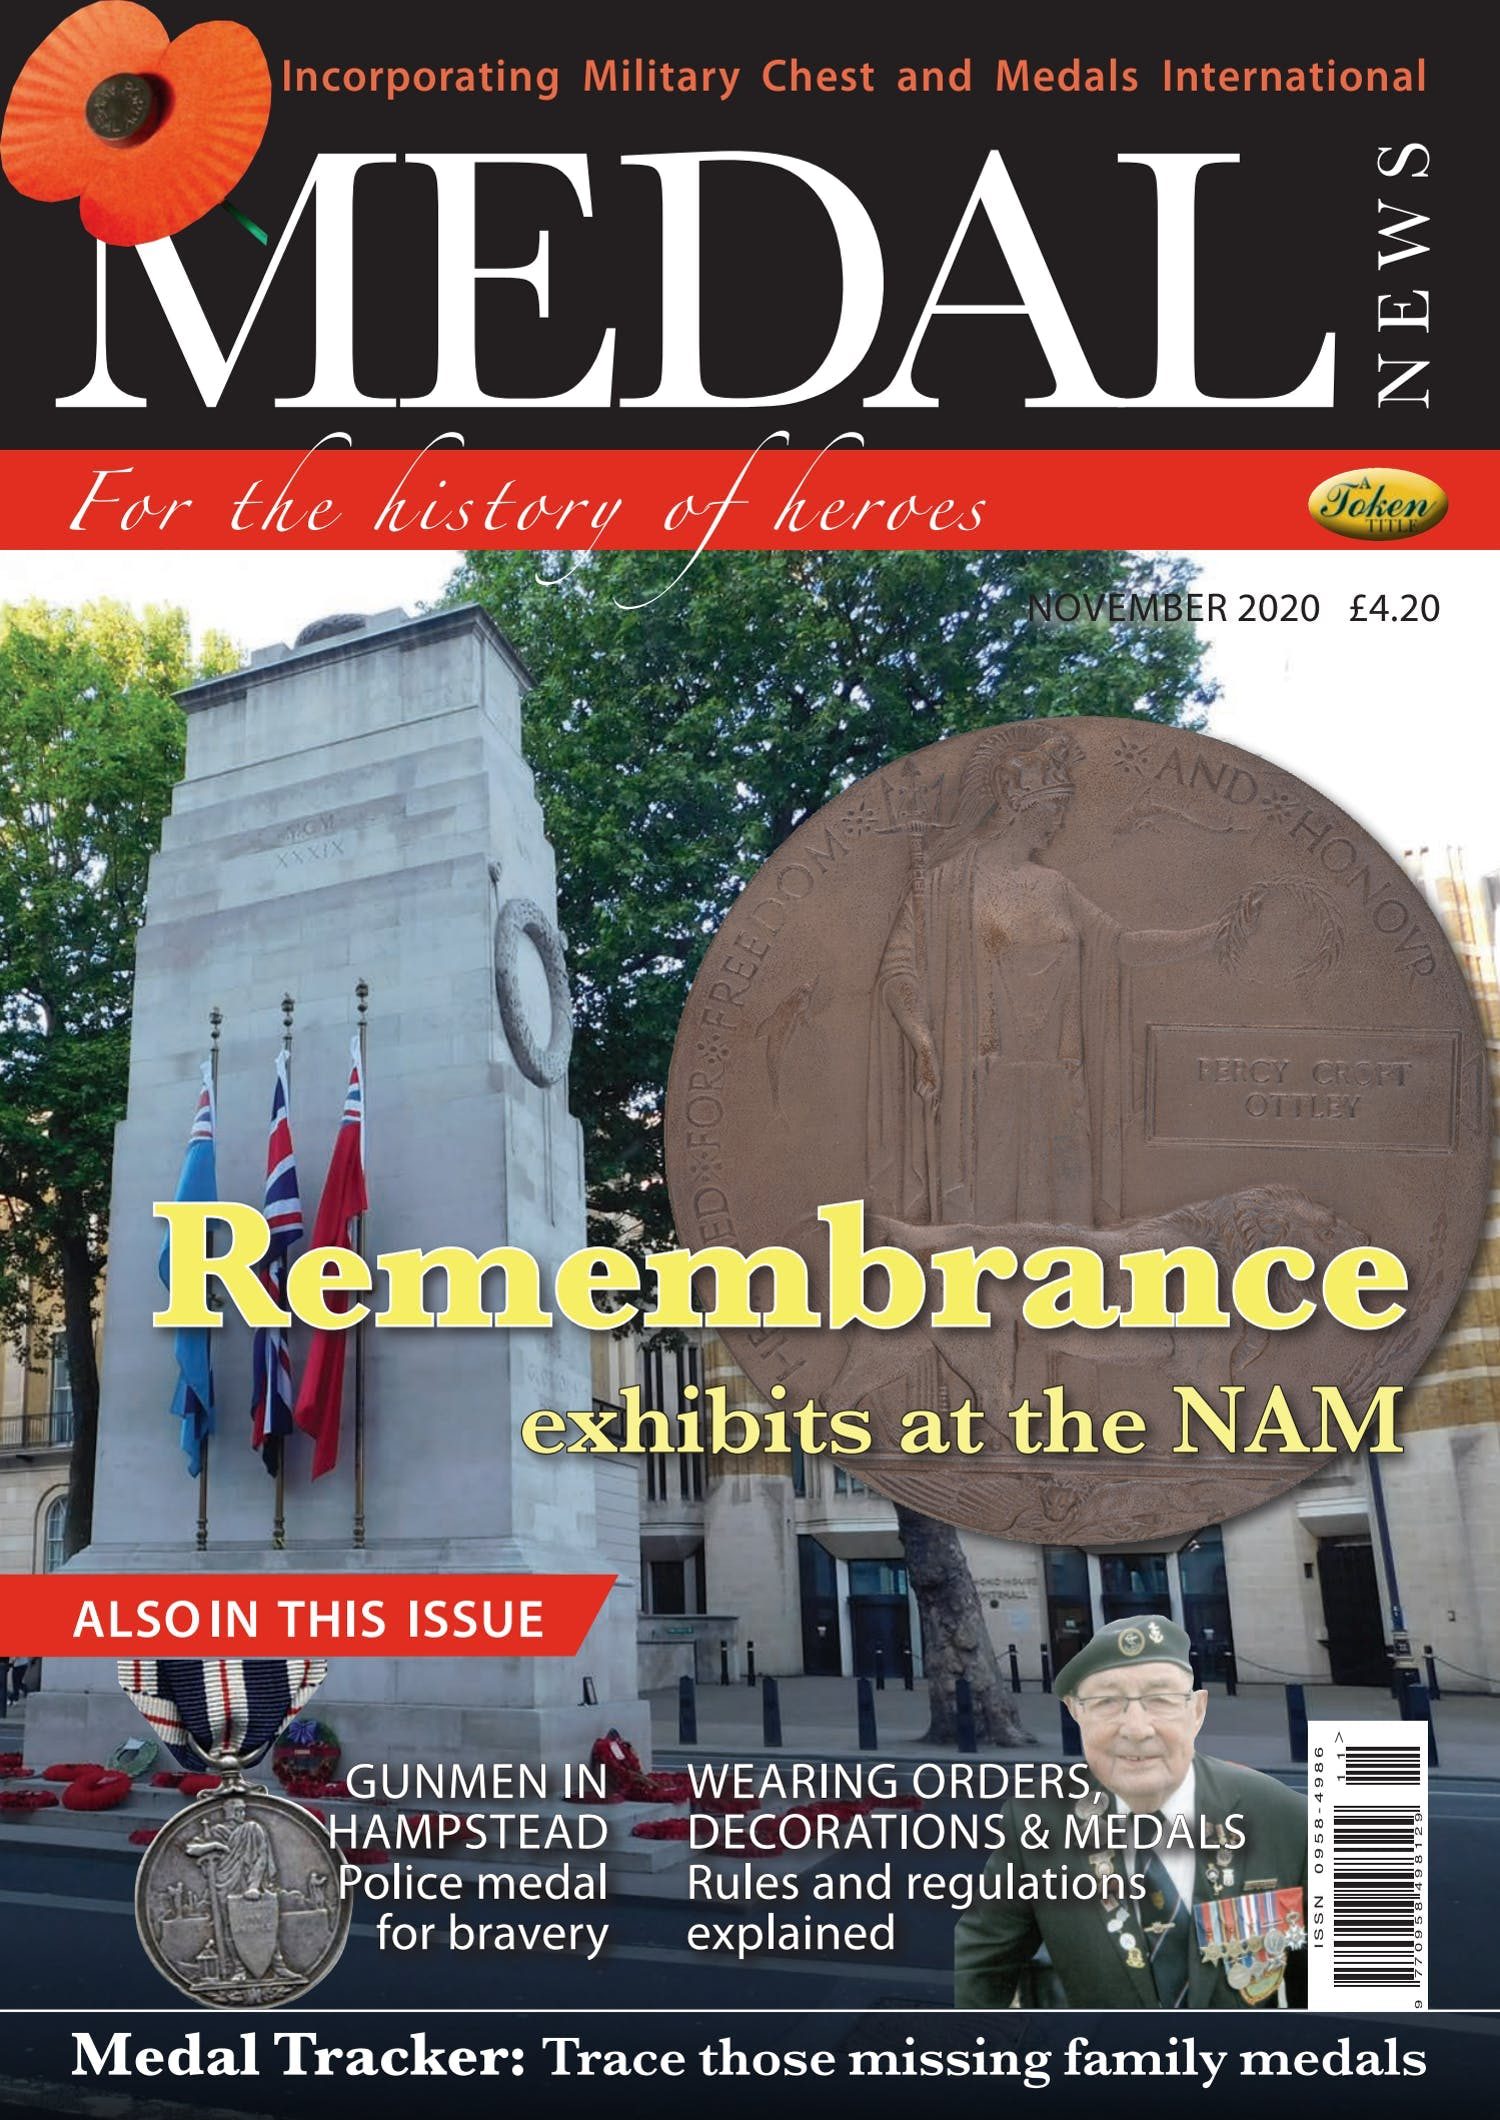 Front cover of 'Rememberance exhibits at the NAM', Medal News November 2020, Volume 58, Number 10 by Token Publishing